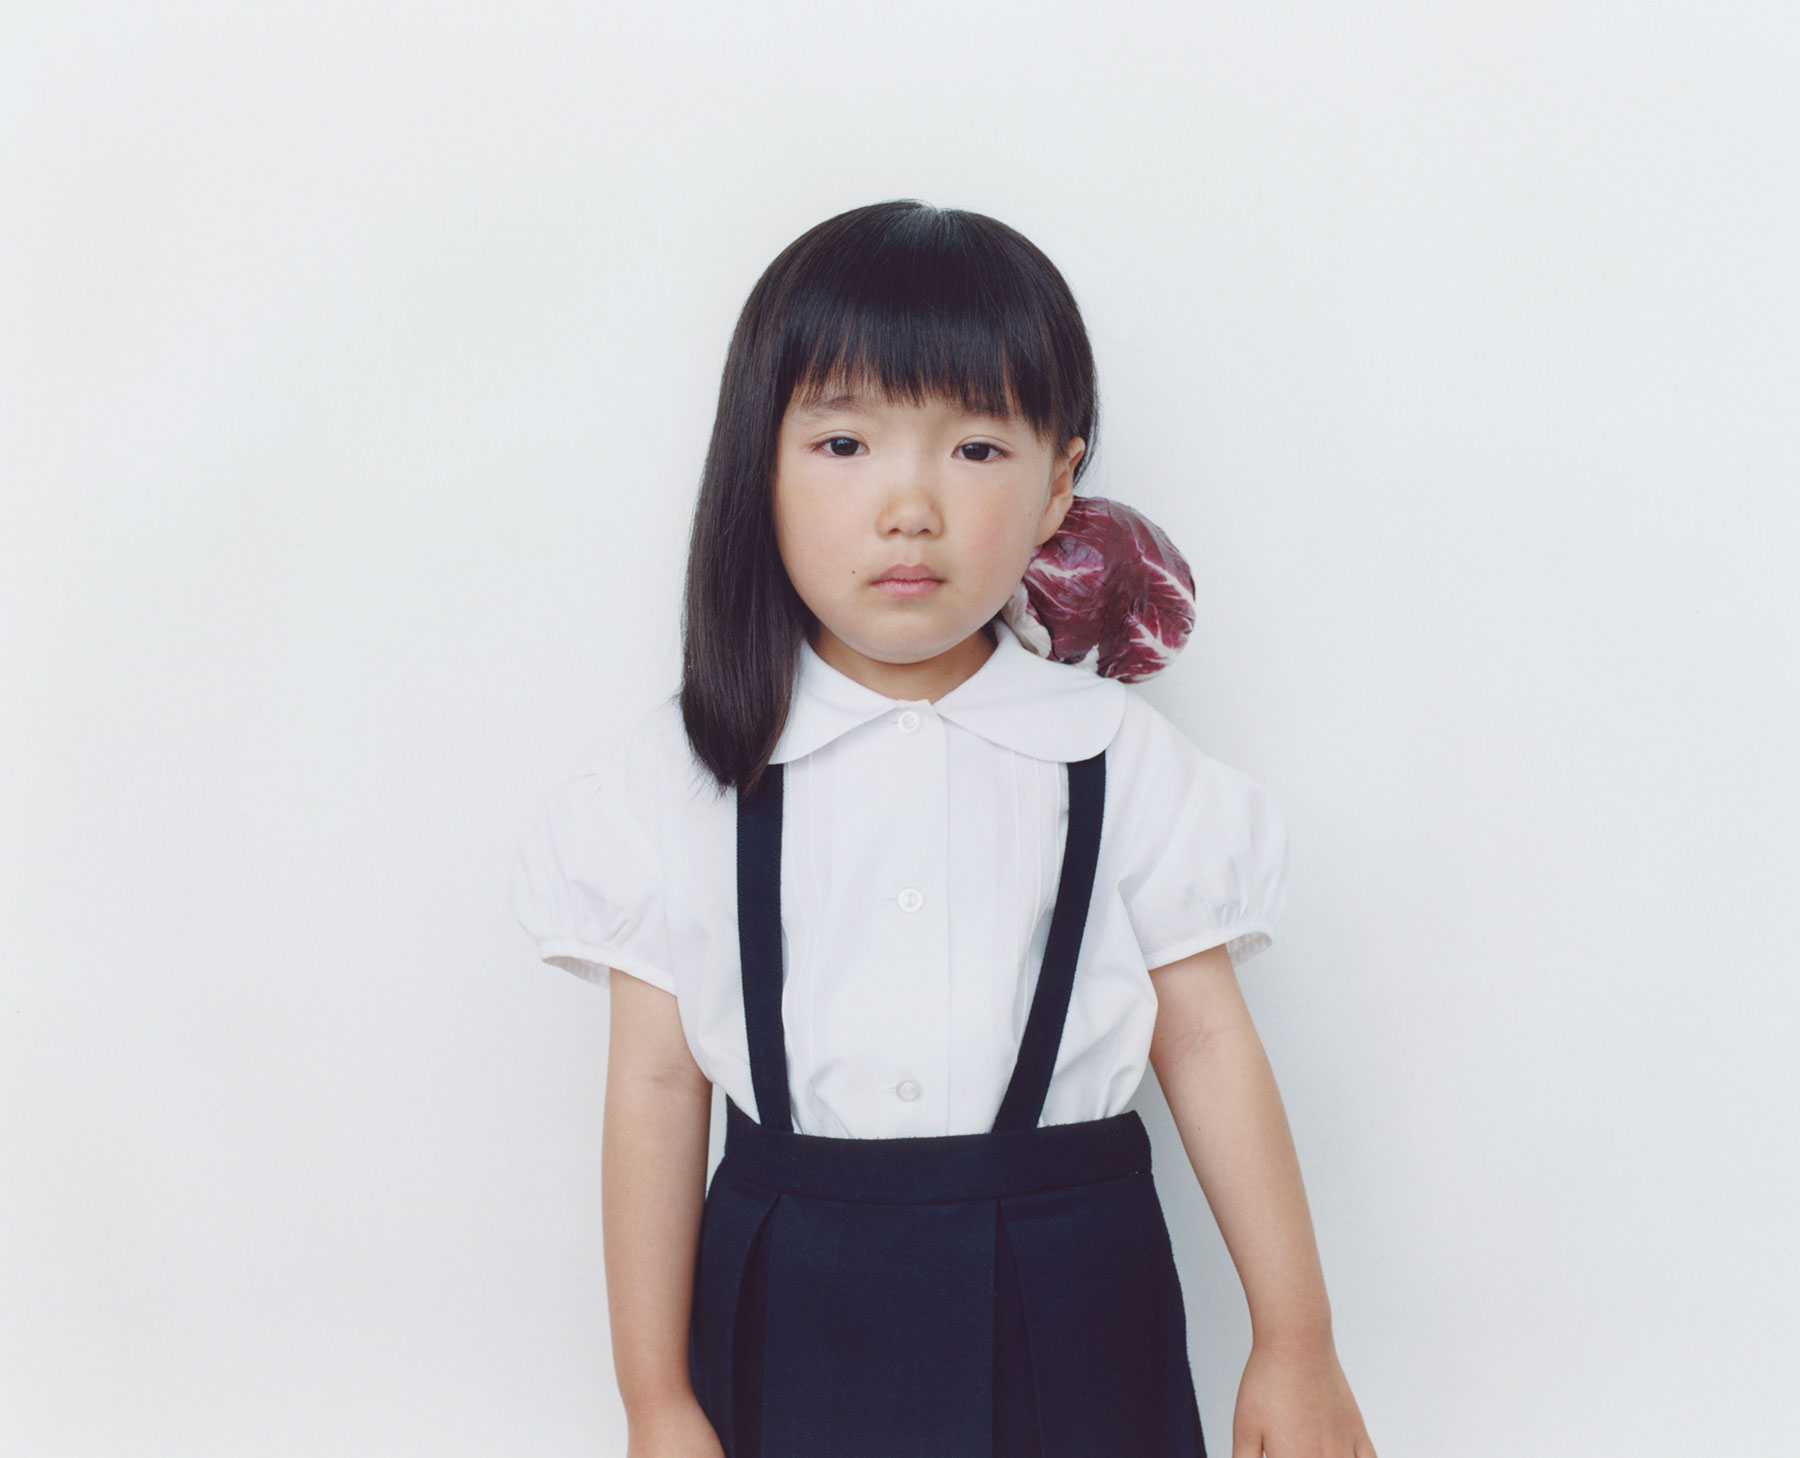 Osamu Yokonami,  1000 Children: Purple Cabbage No. 76 , 2010-2013  Digital pigment print, 895 x 1105 mm (approx. 35 x 43.5 in), edition of 5; 146 x 168 mm (approx. 5.75 x 6.6 in), edition of 10   Inquire